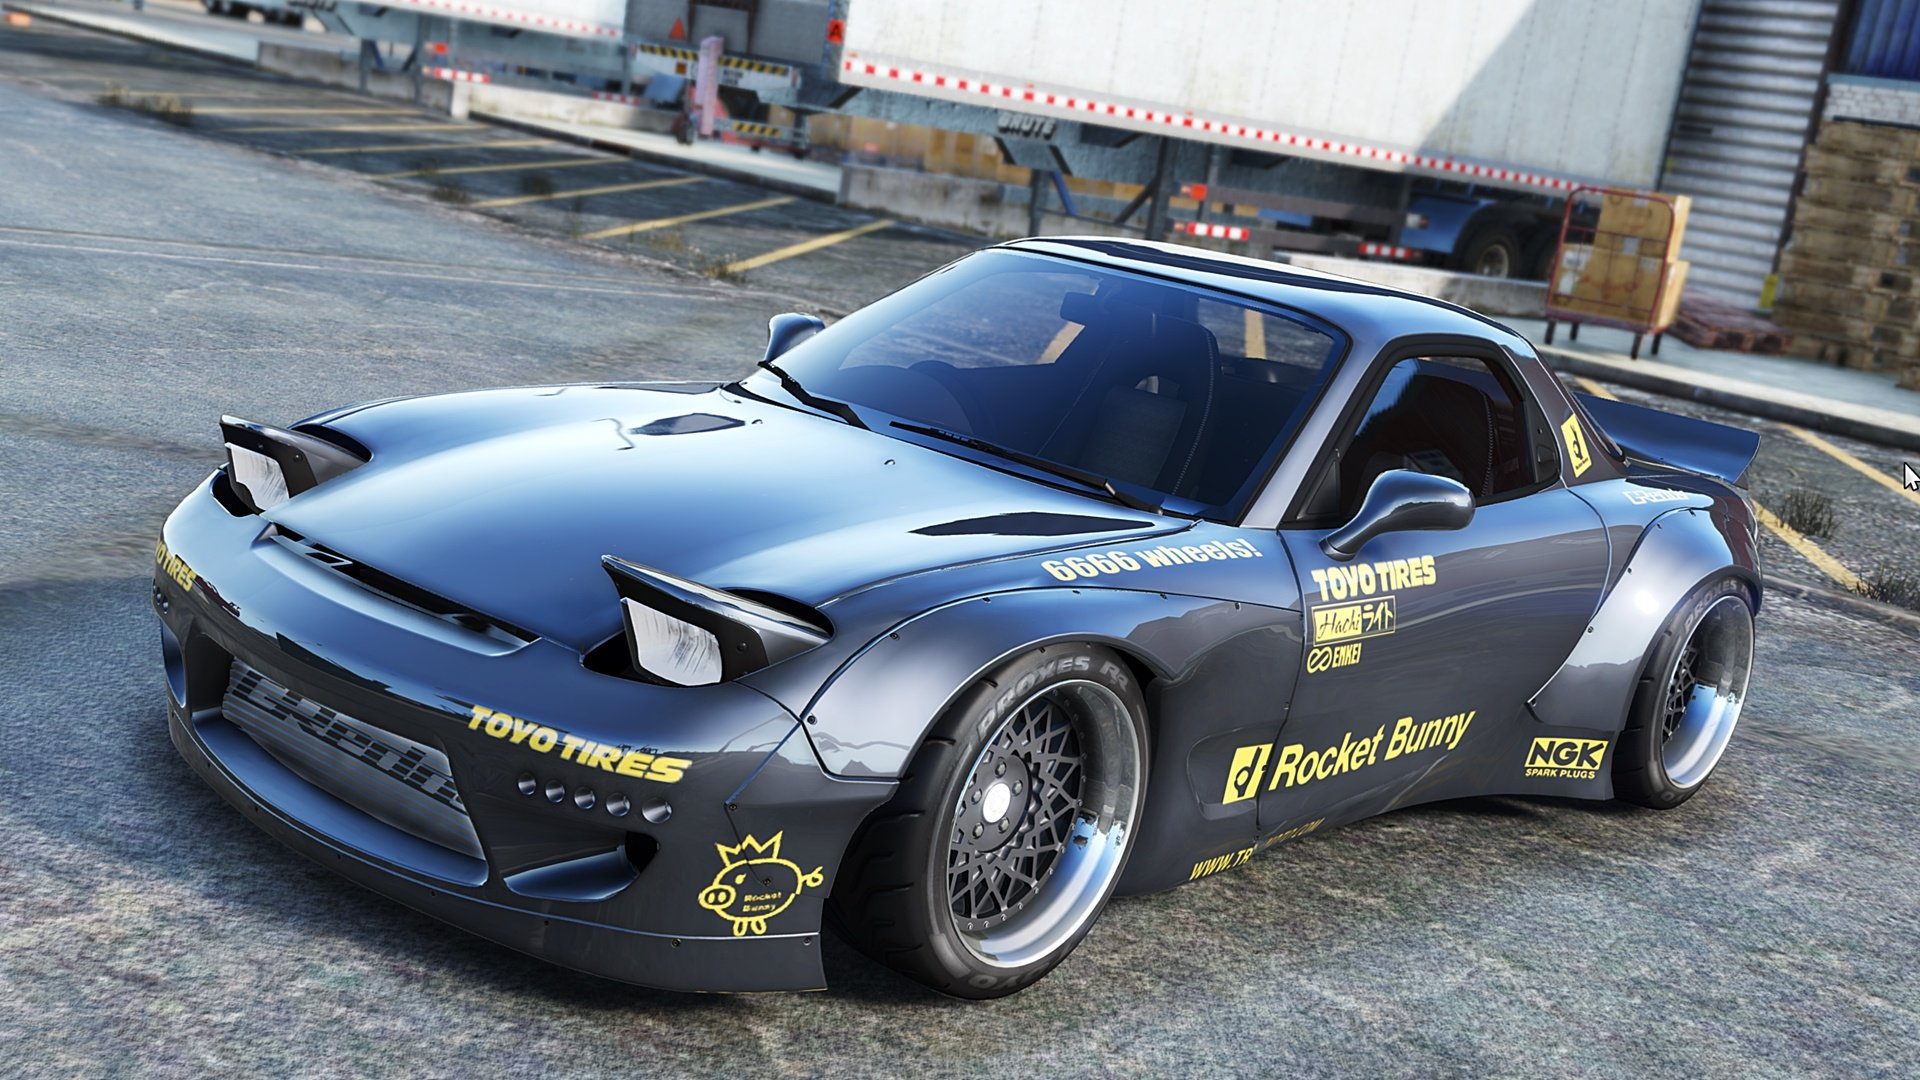 Rocket Bunny Body Kit Macda RX-7